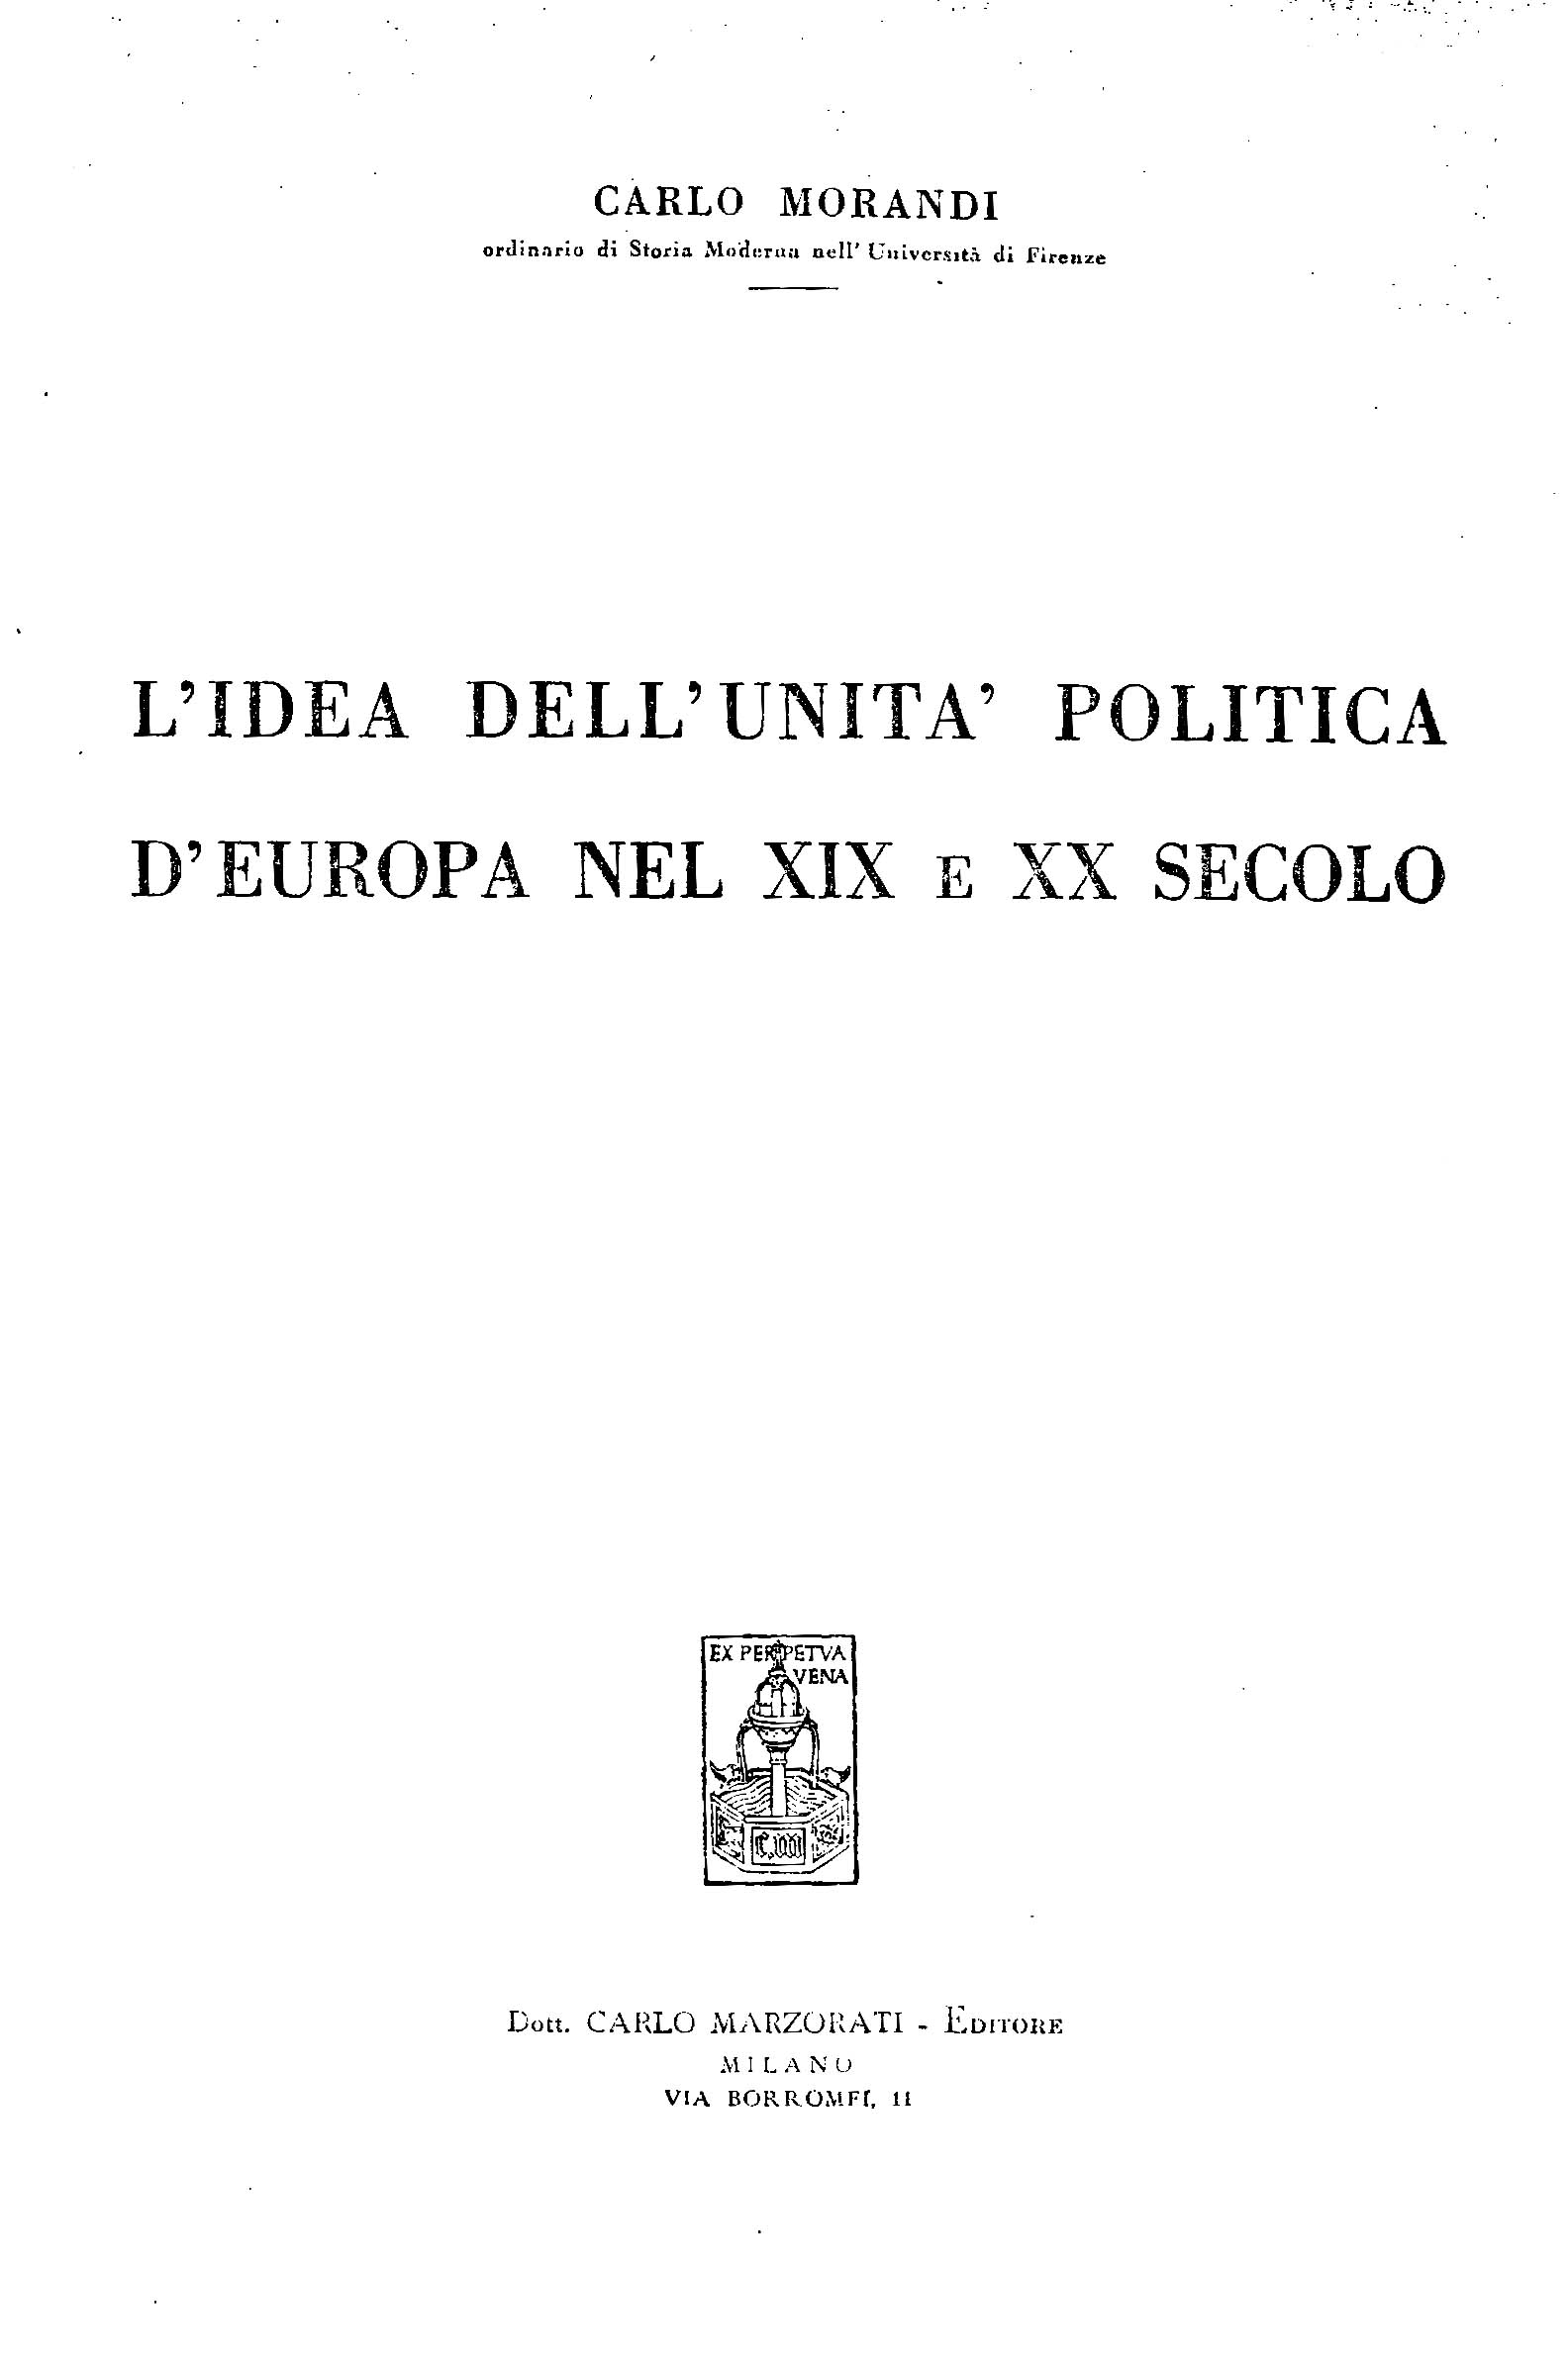 Eliohs Electronic Library Of Historiography